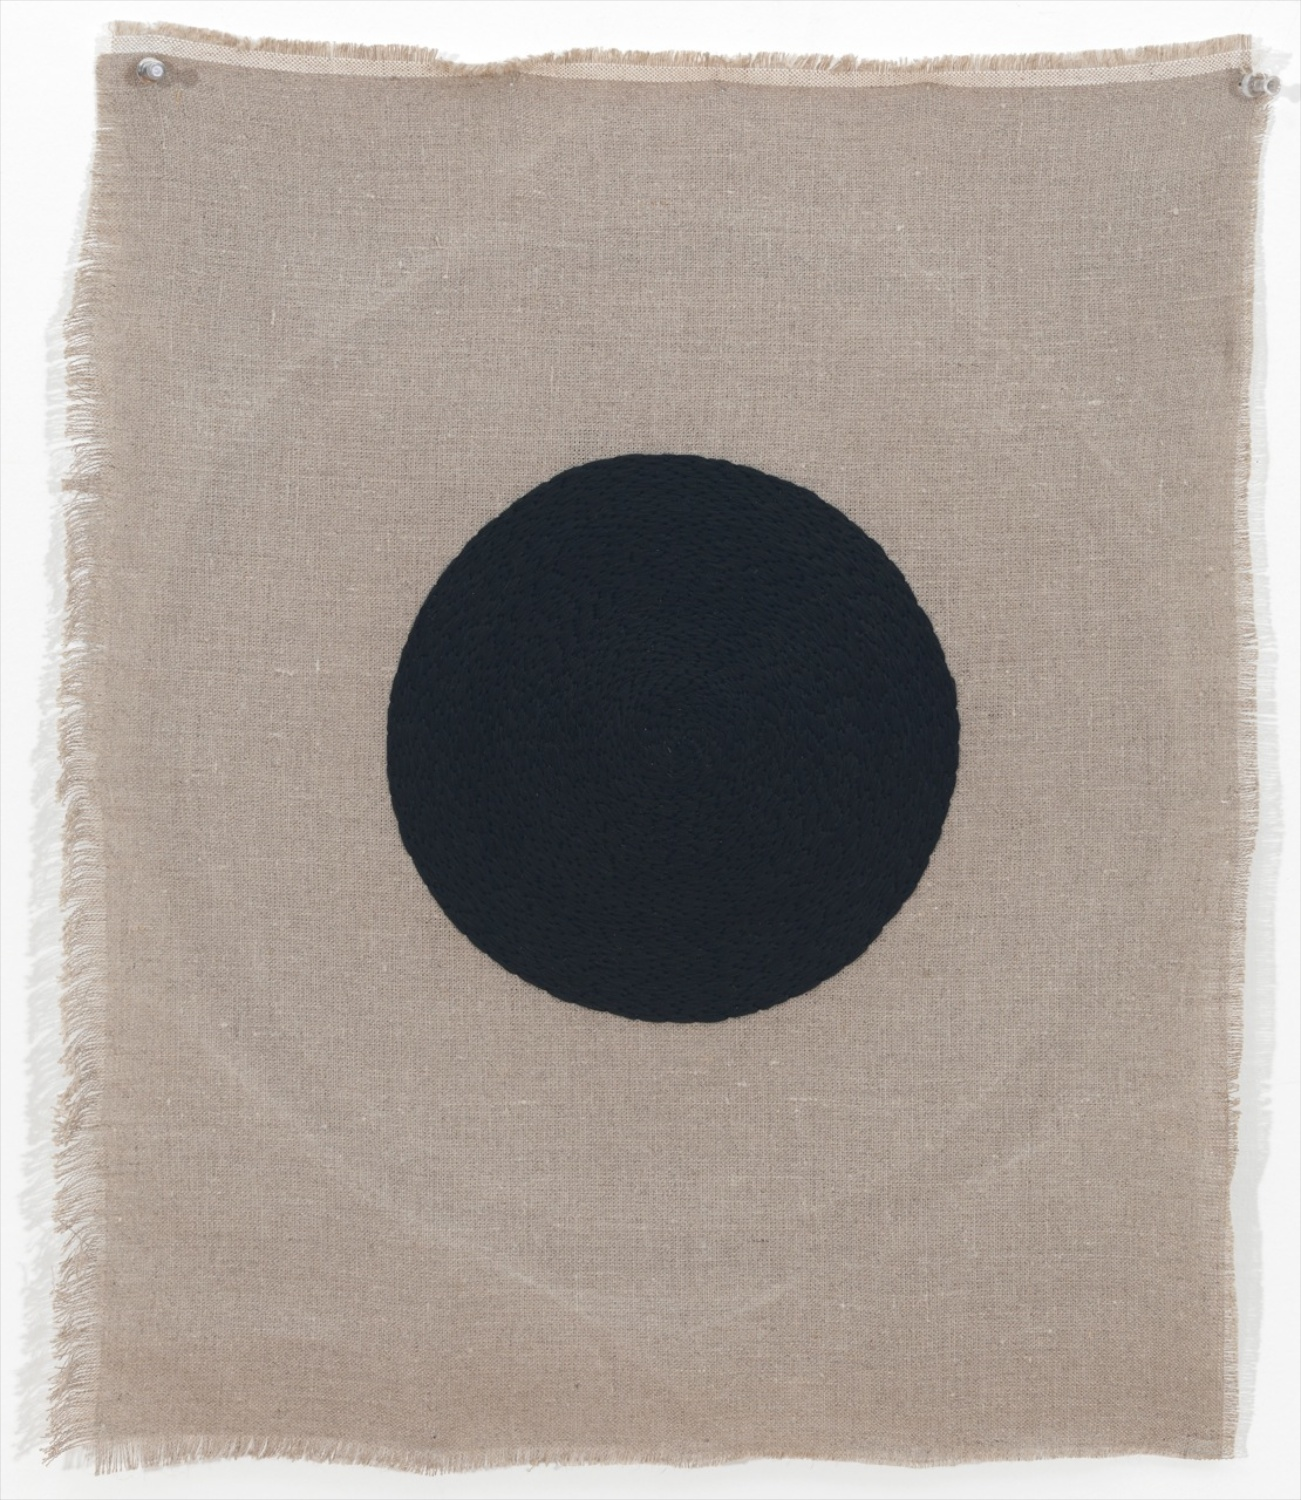 Michelle Grabner  Untitled  2012 Embroidery thread on linen 24h x 22w in MGrab293